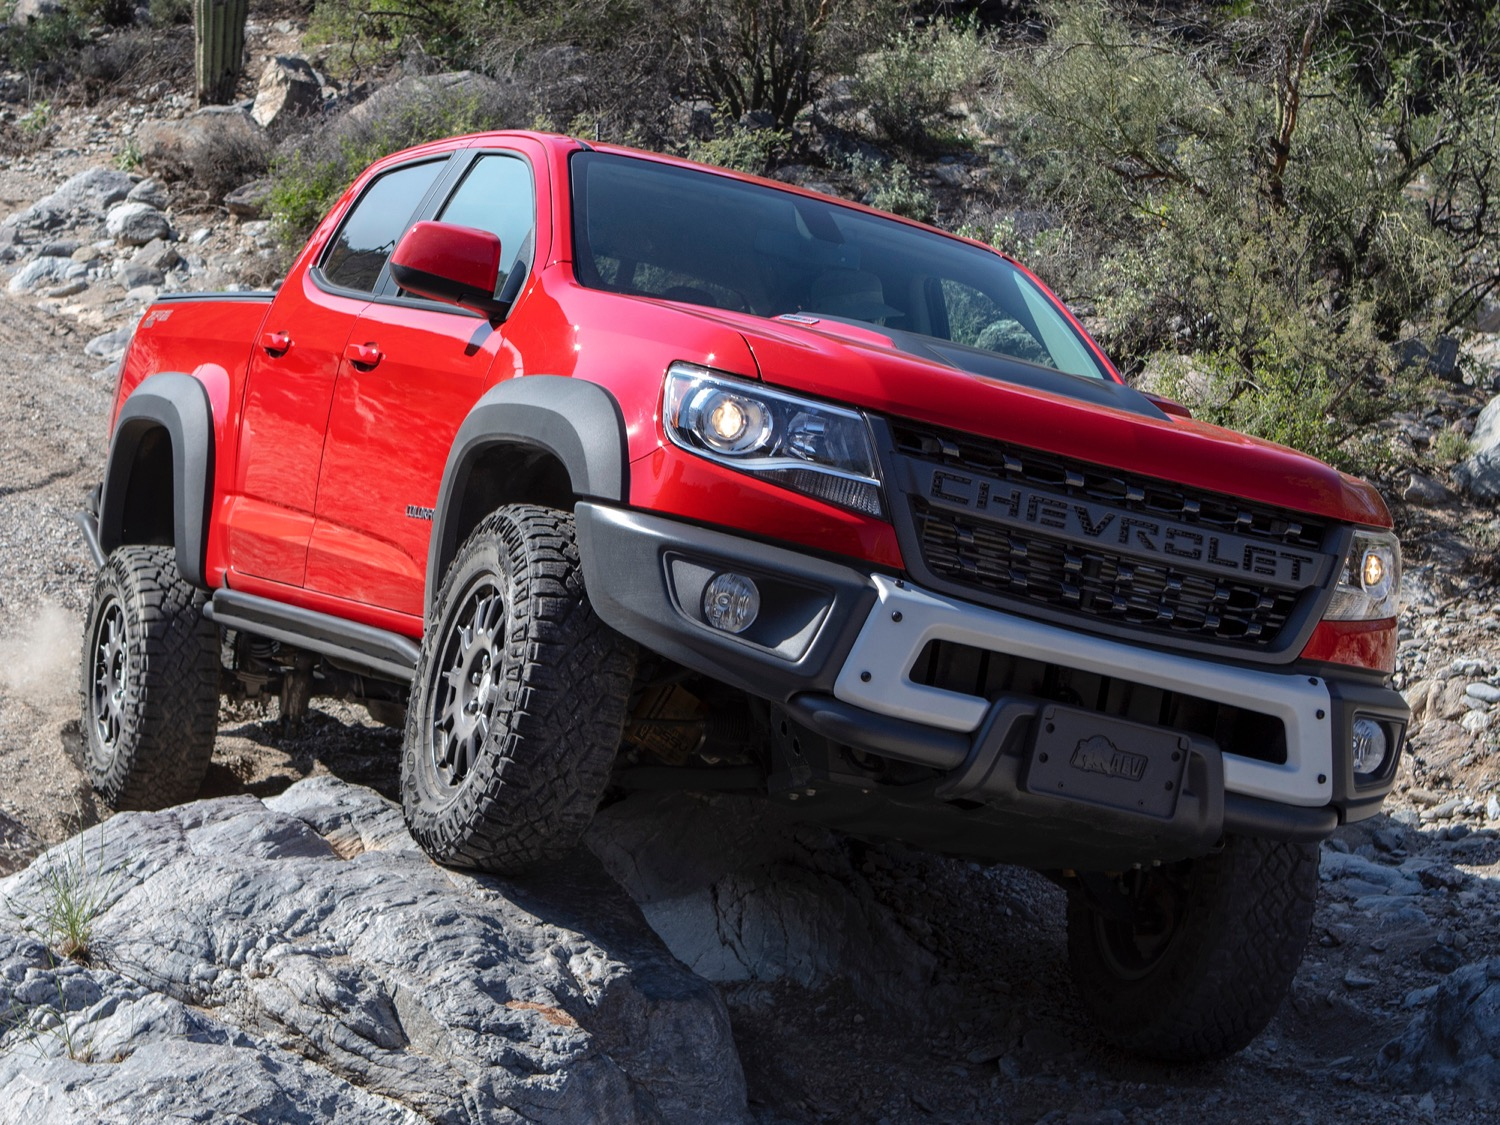 Chevy Colorado Sales Up 16% In Q1 2019 | Gm Authority 2022 Chevy Colorado Zr2 Bison Colors, Ground Clearance, Interior